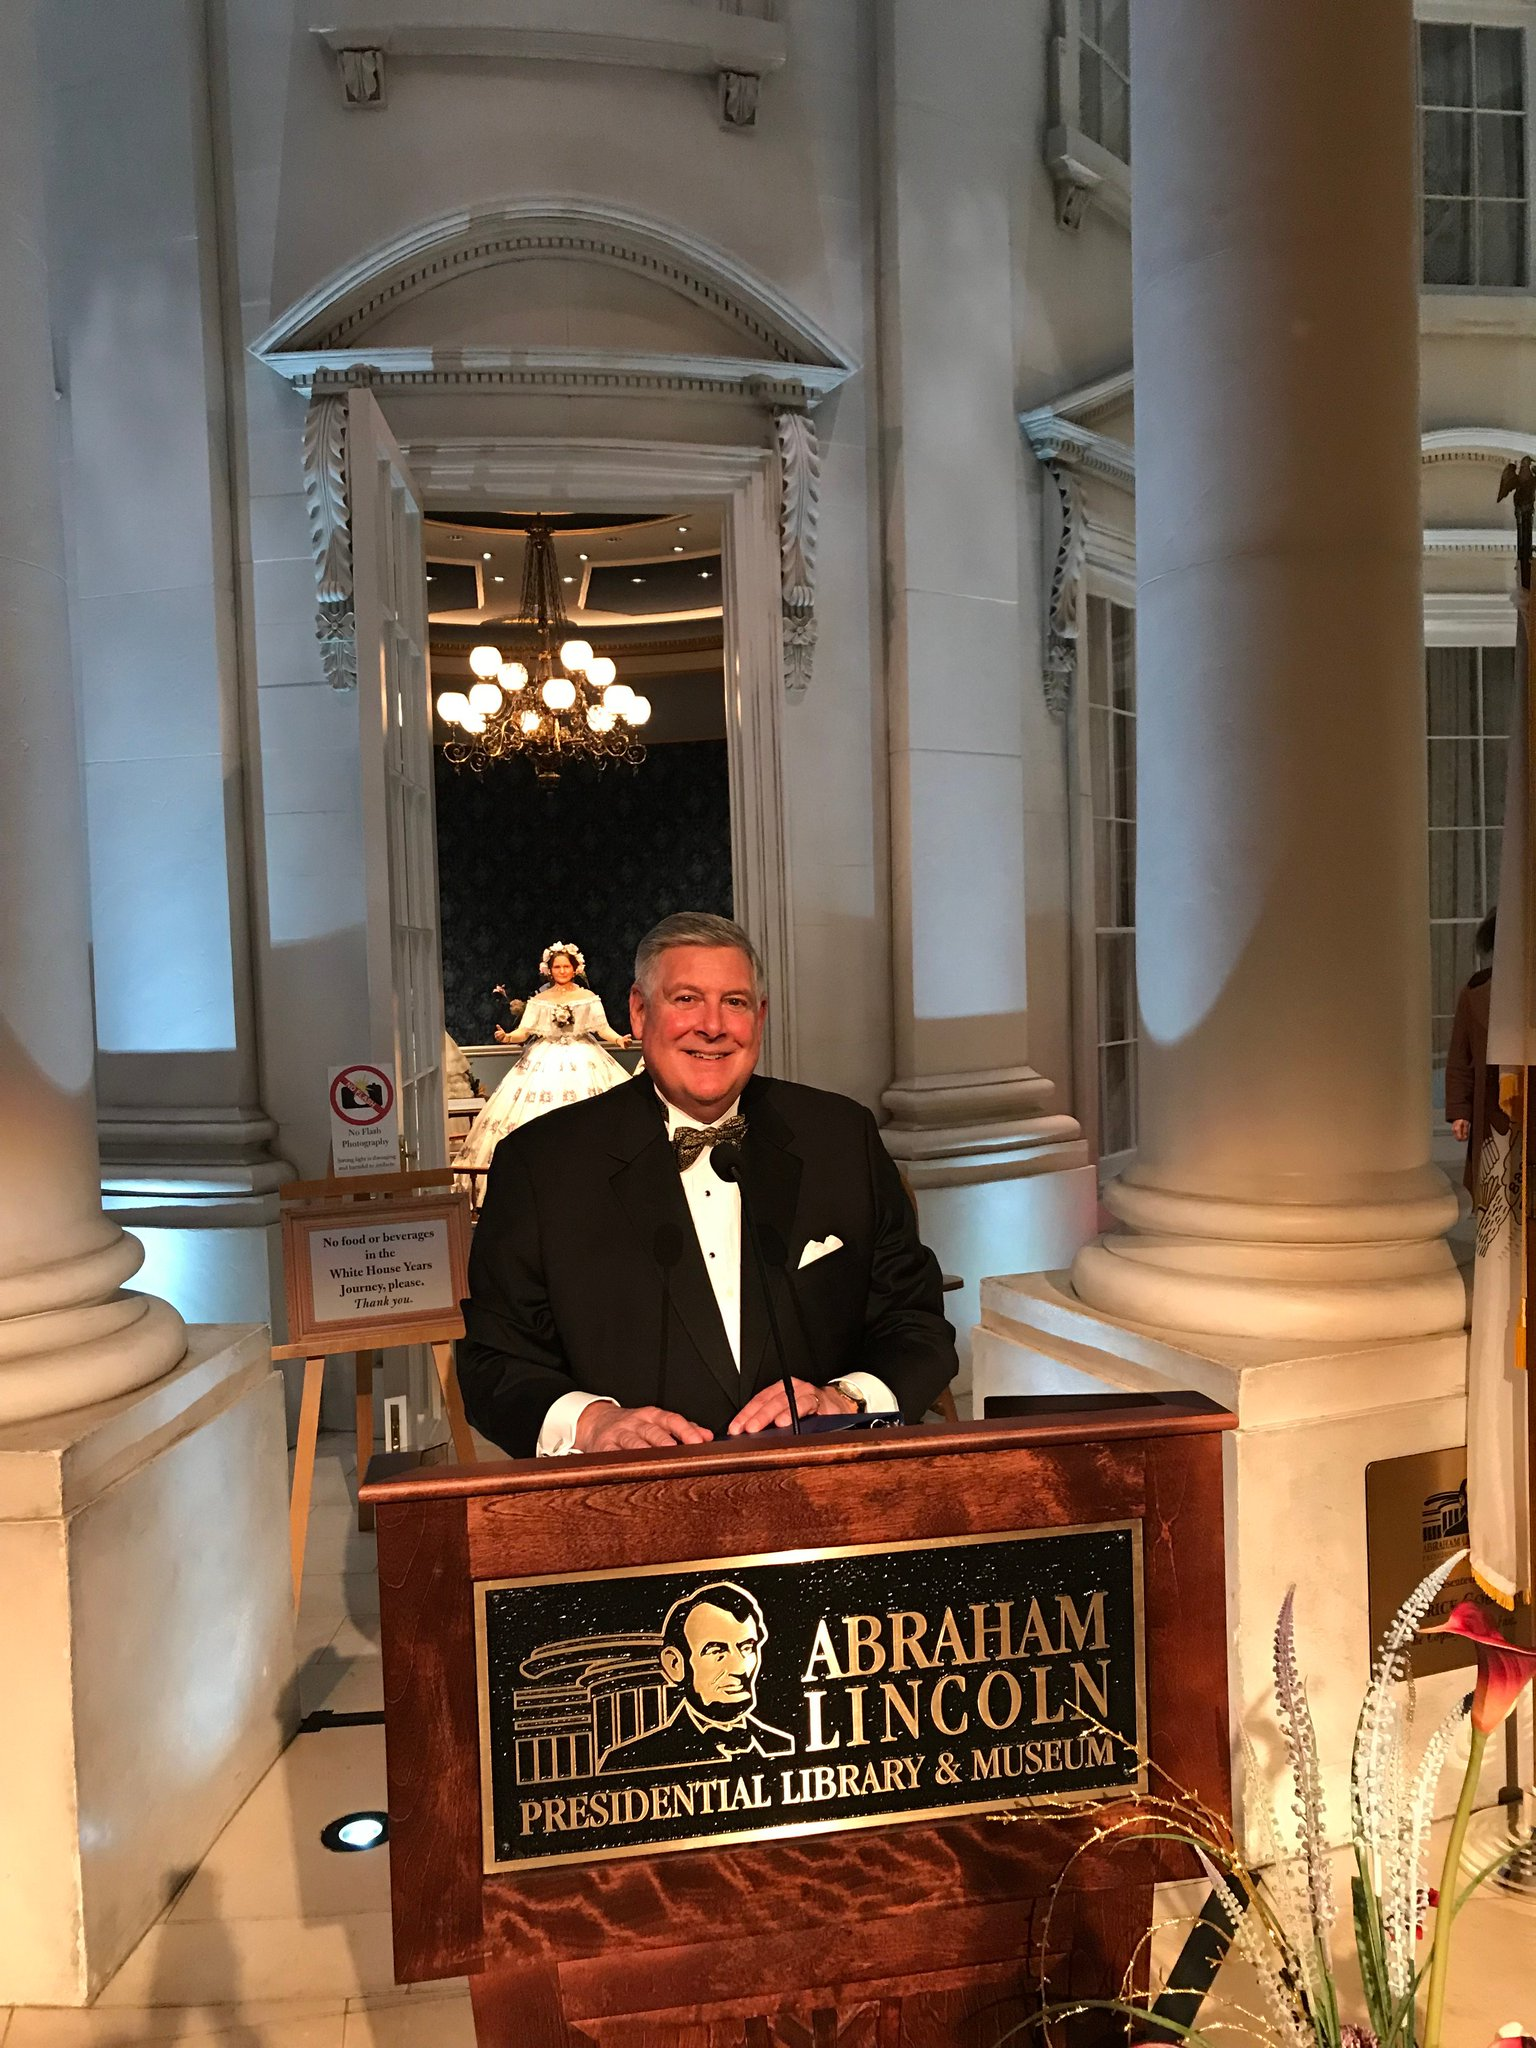 Last night at the Abraham Lincoln Presidential Museum in Springfield, I was honored to MC the @illinoiscourts Bicentennial of the Illinois Judiciary Gala. Author @ScottTurow was the keynote speaker. He wrote some of his award winning novels on @Metra! #ILSupremeCourt200 https://t.co/8ZafGCISX7